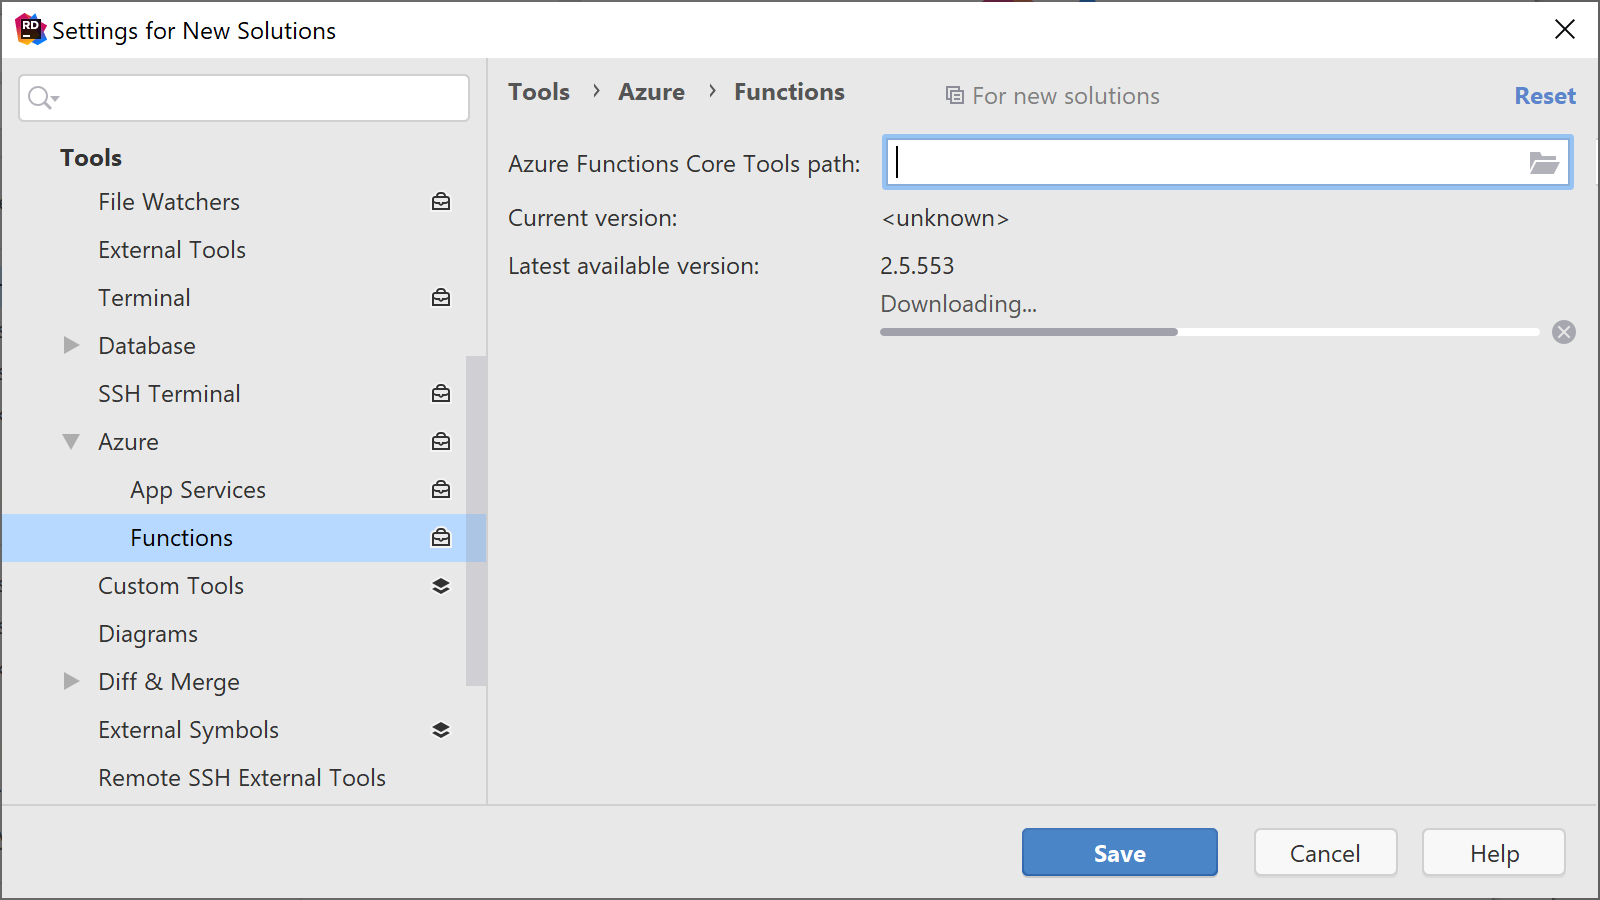 Manage Azure Functions Core Tools